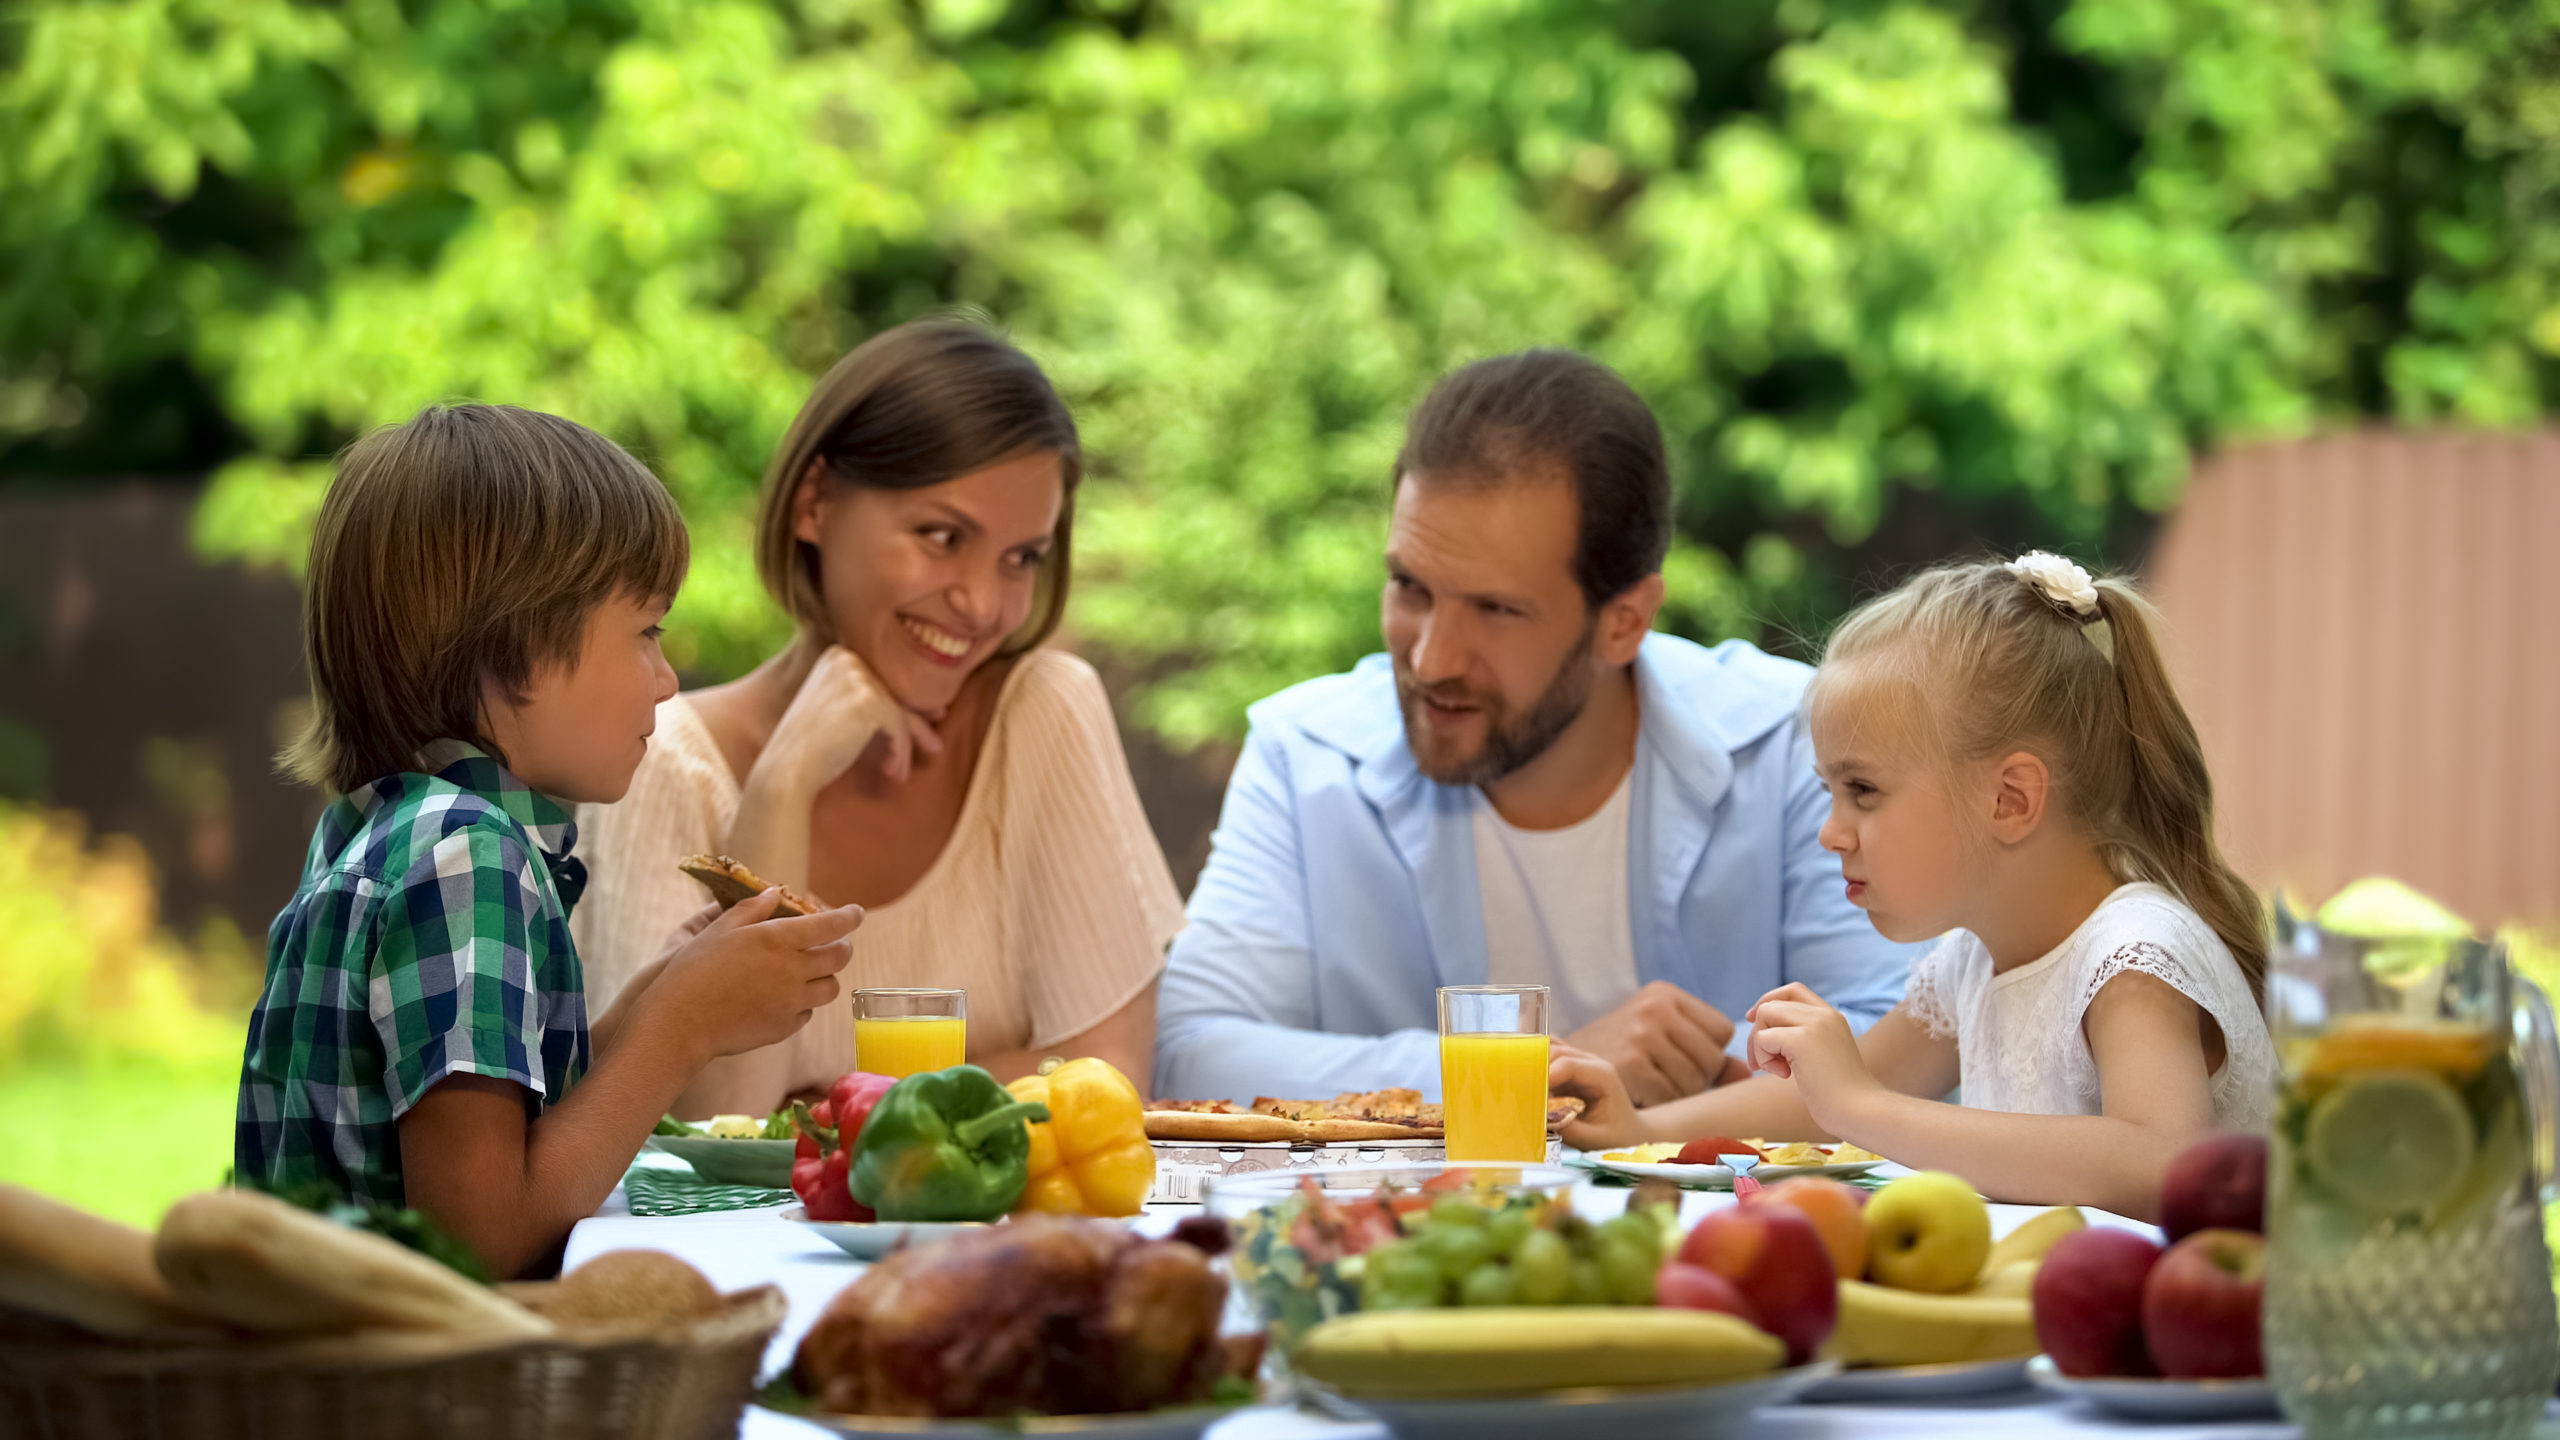 Italian Parenting Styles: A Look At Raising Kids In Italy